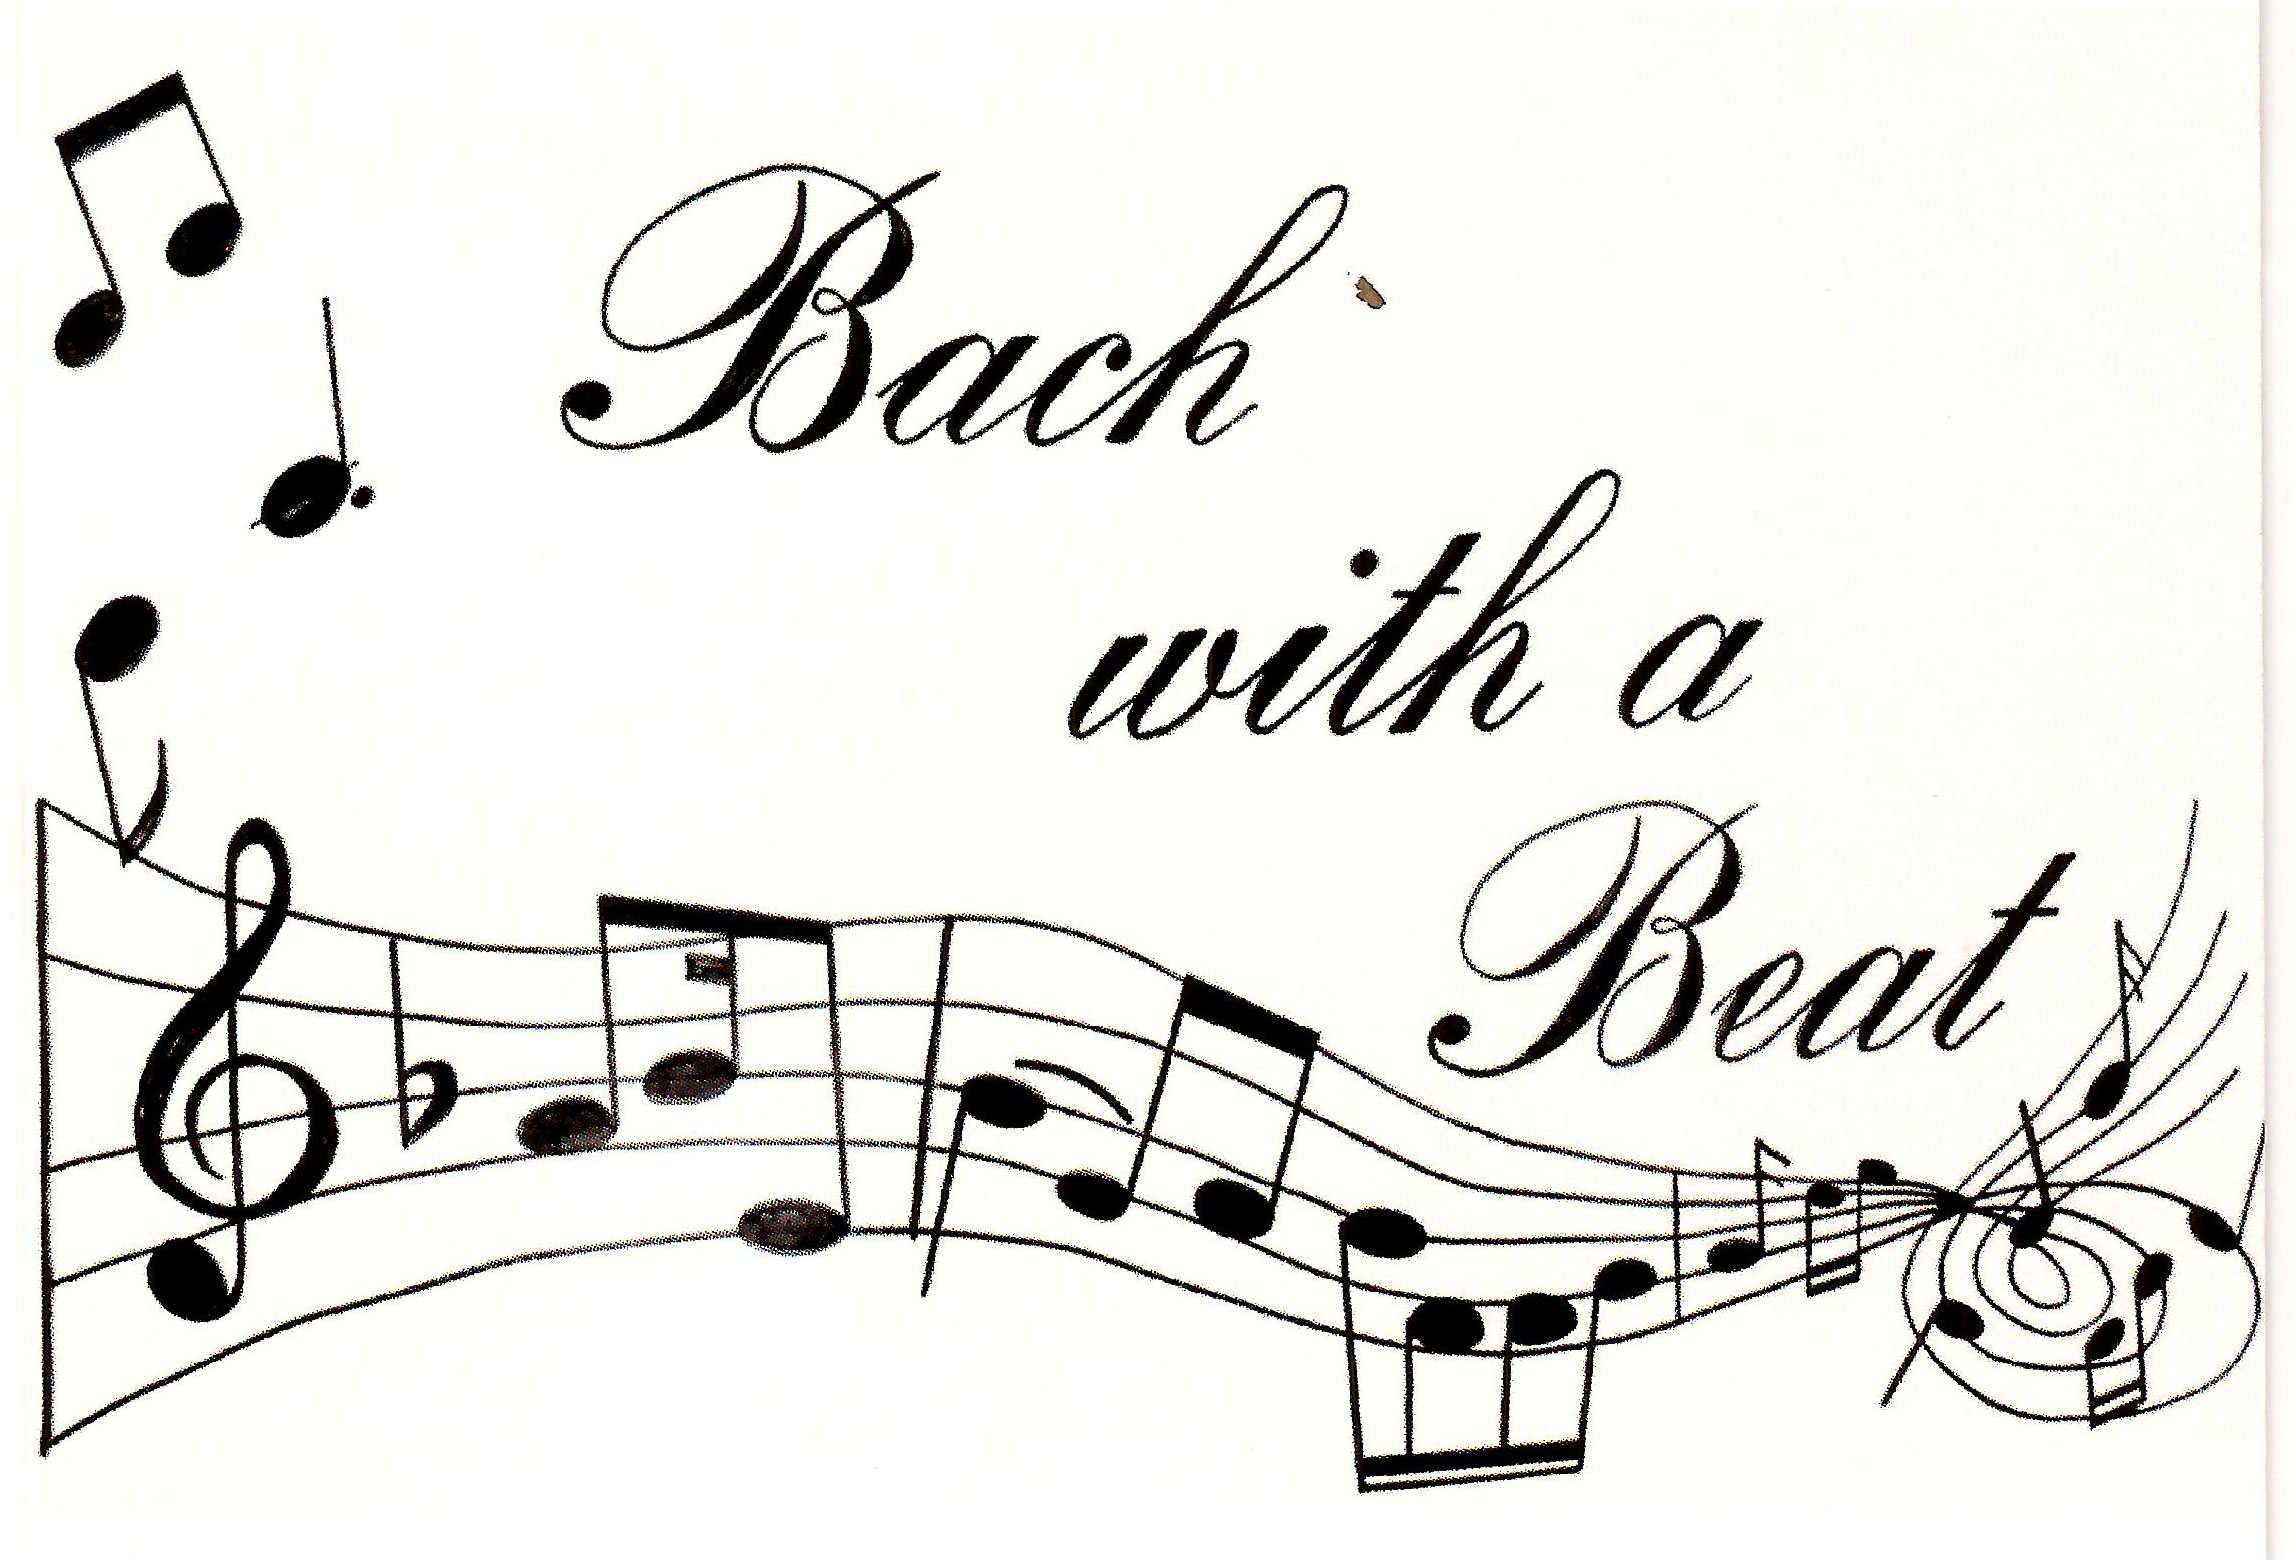 Bach with a Beat